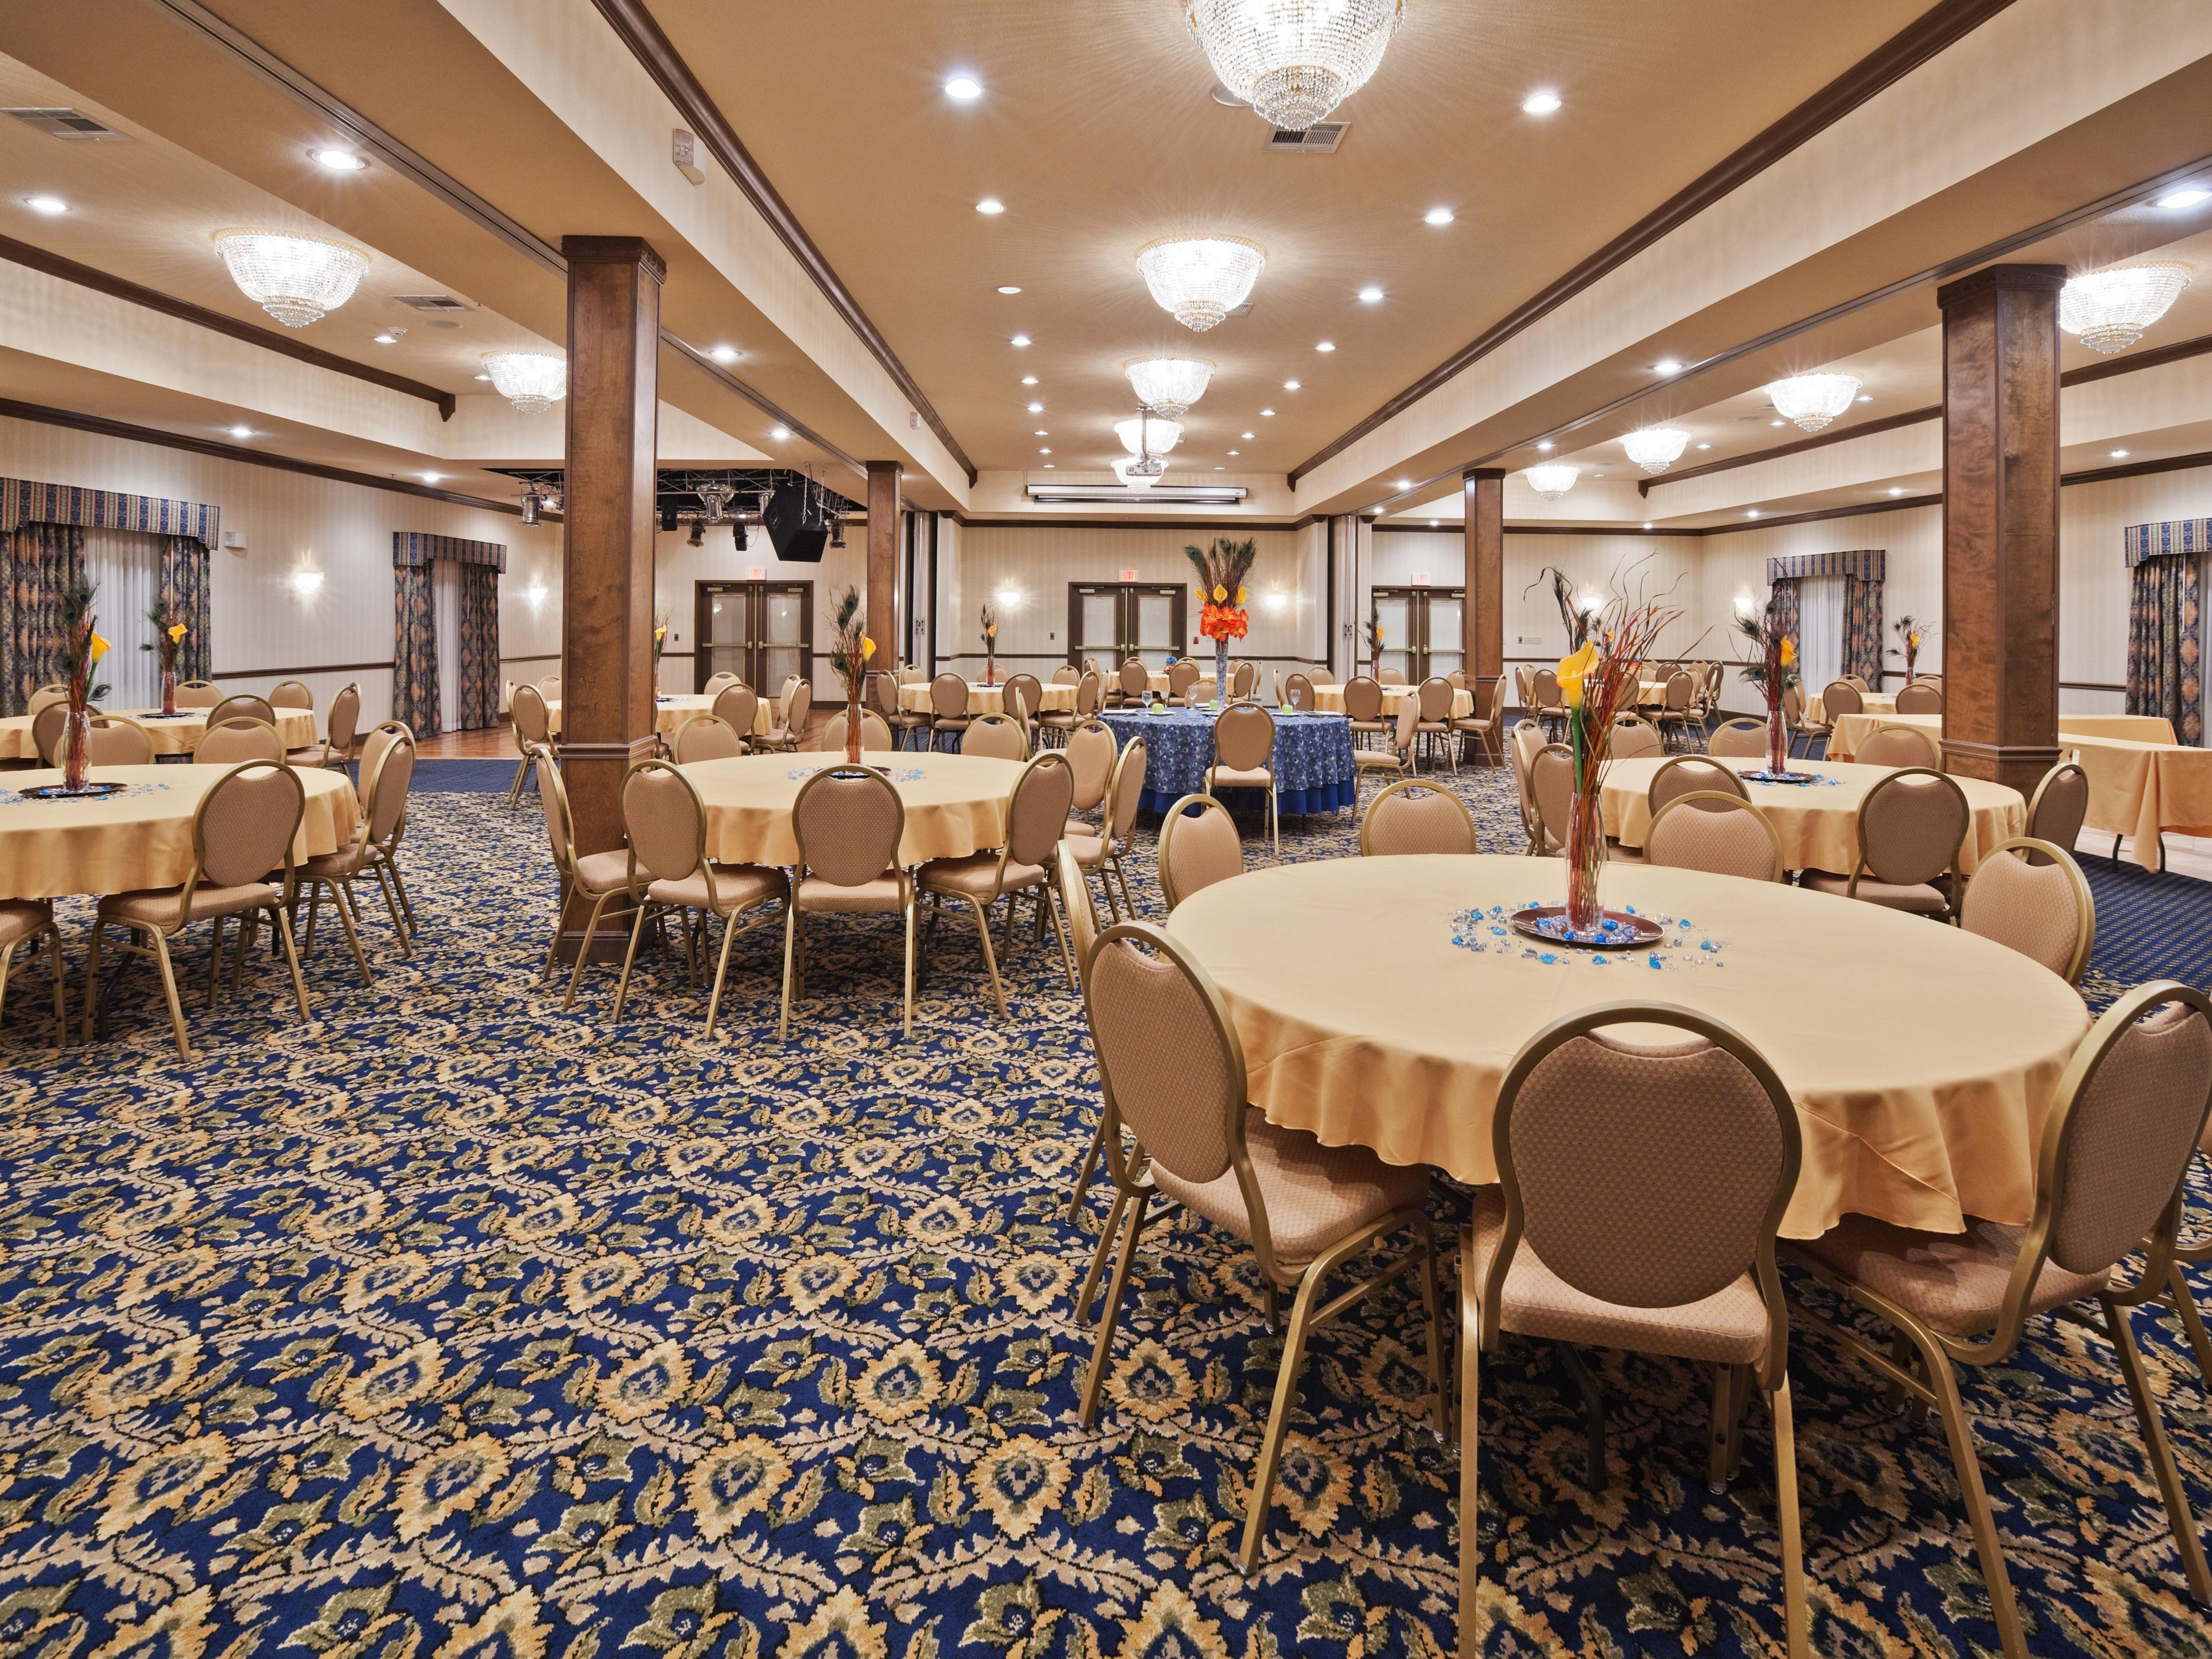 Make your event extra special in our elegant Ballroom!